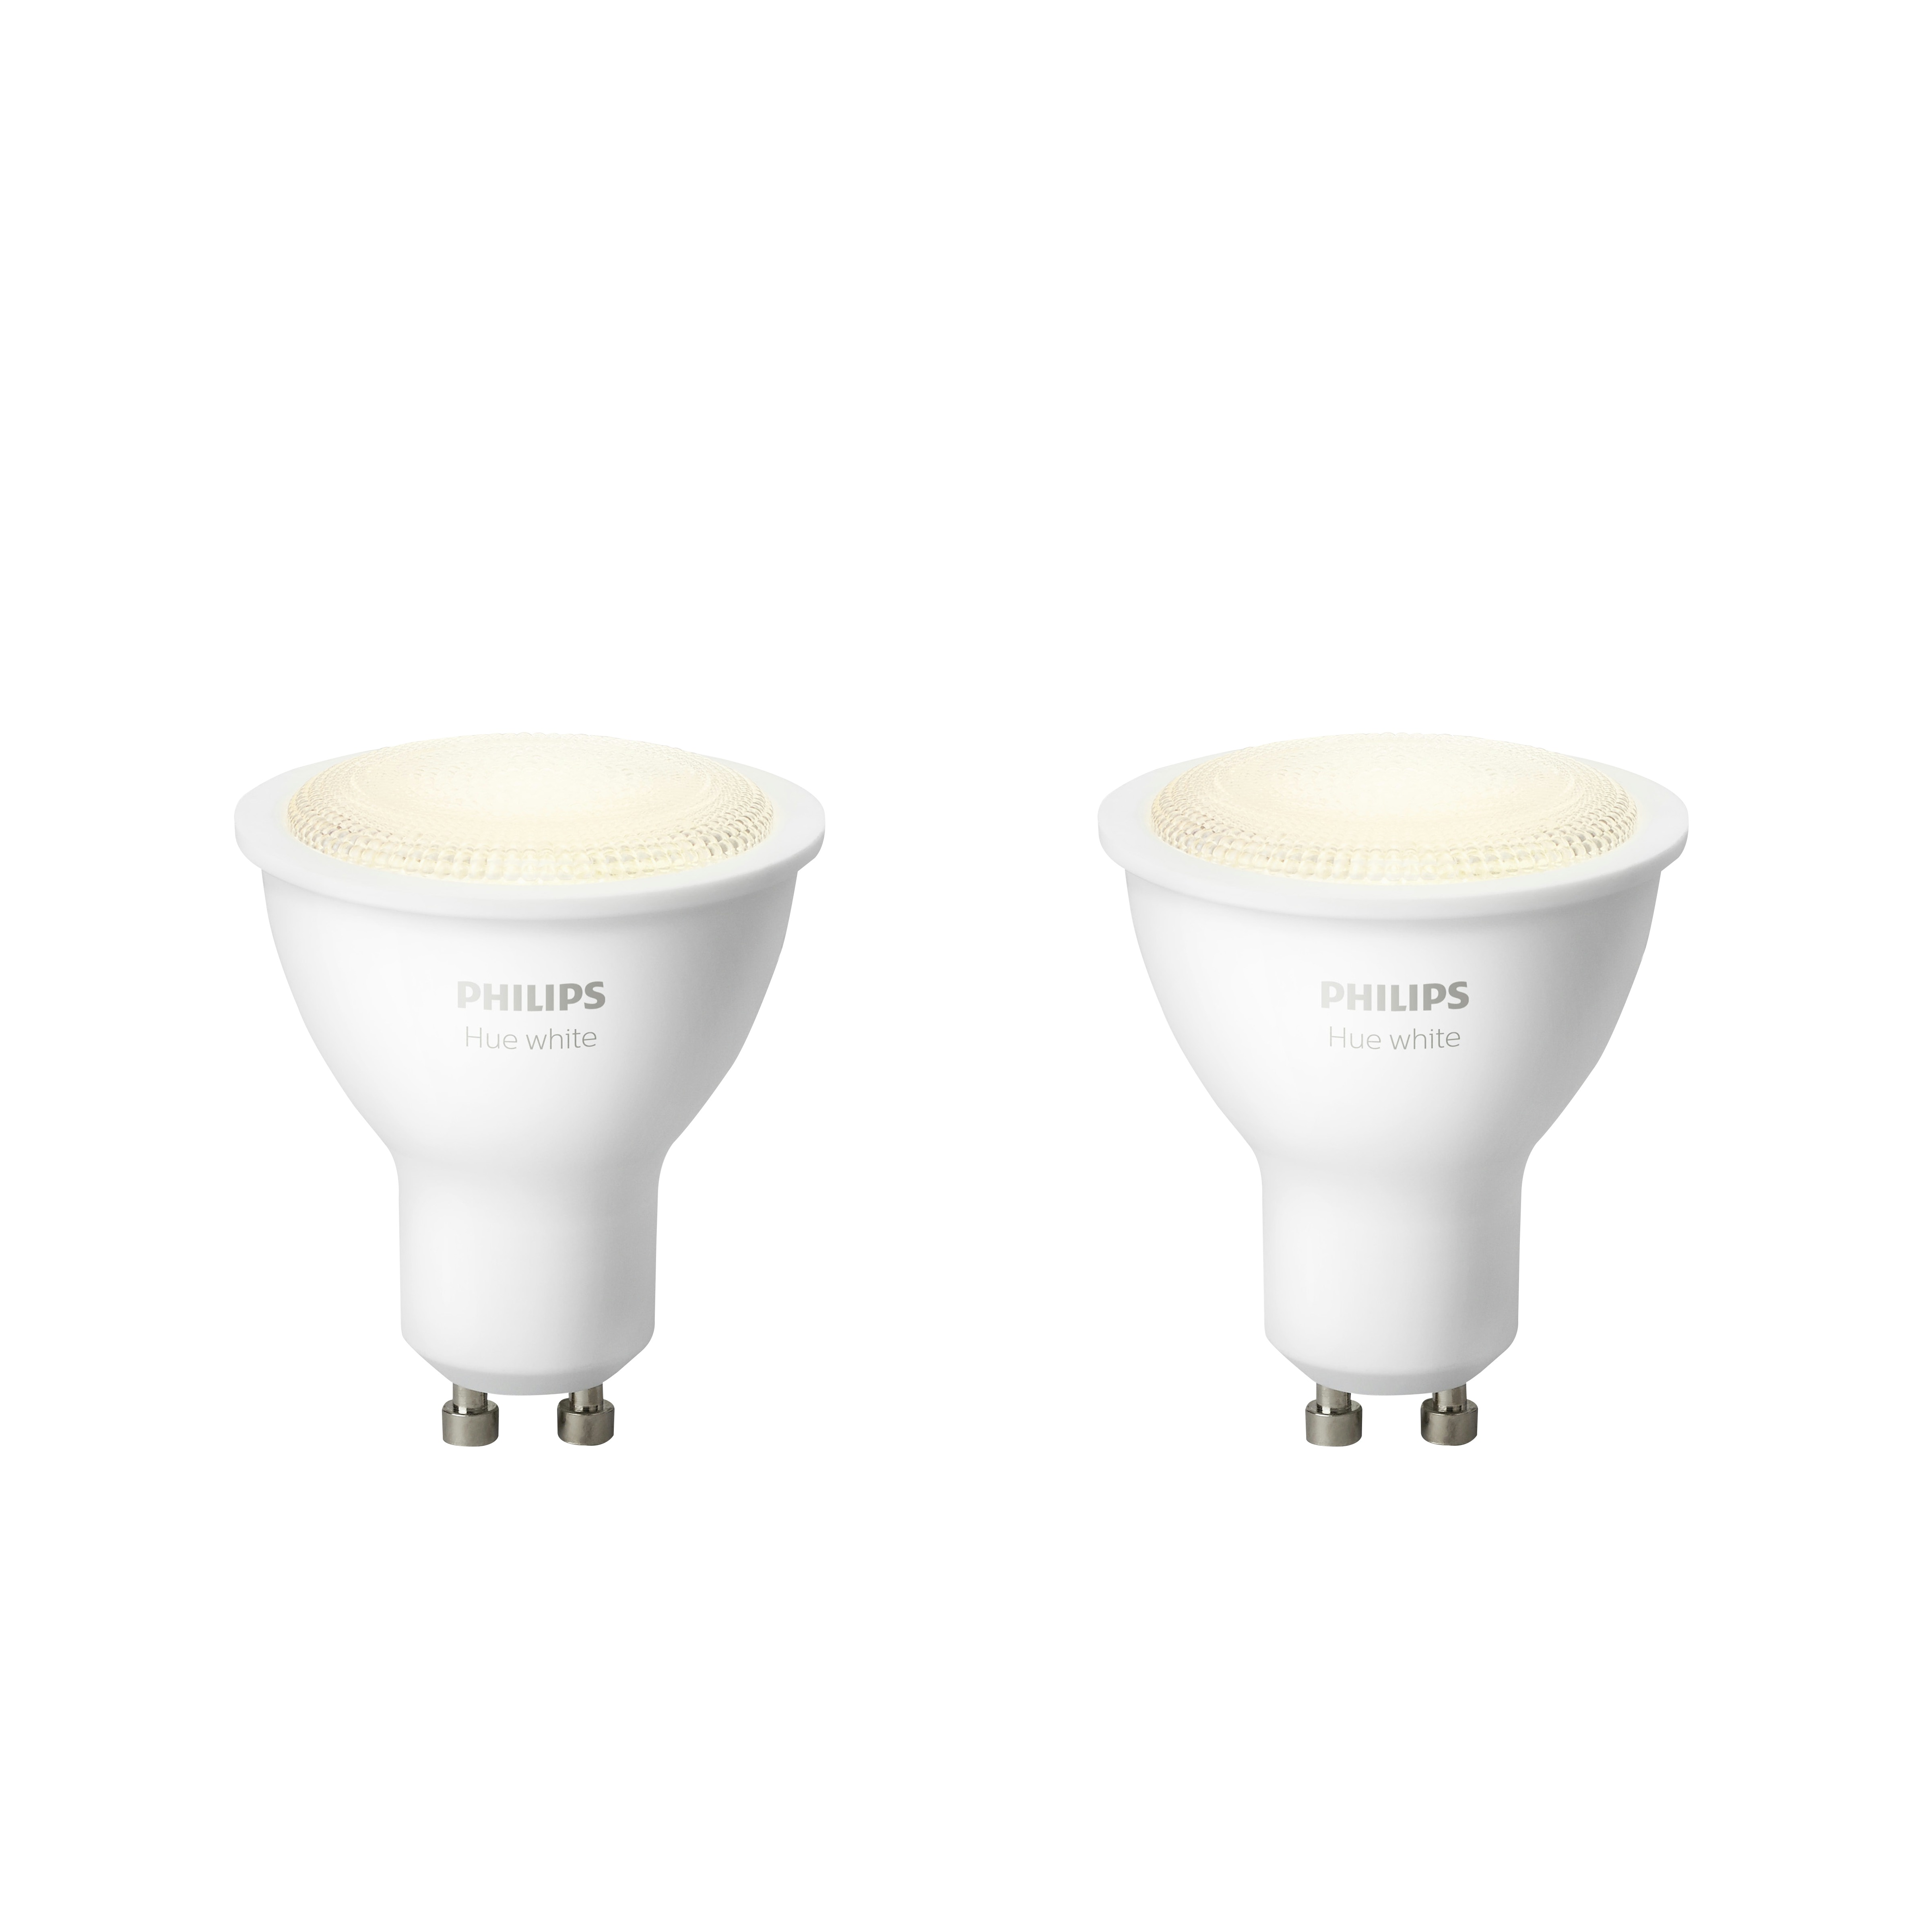 Philips Hue White Dual pack GU10